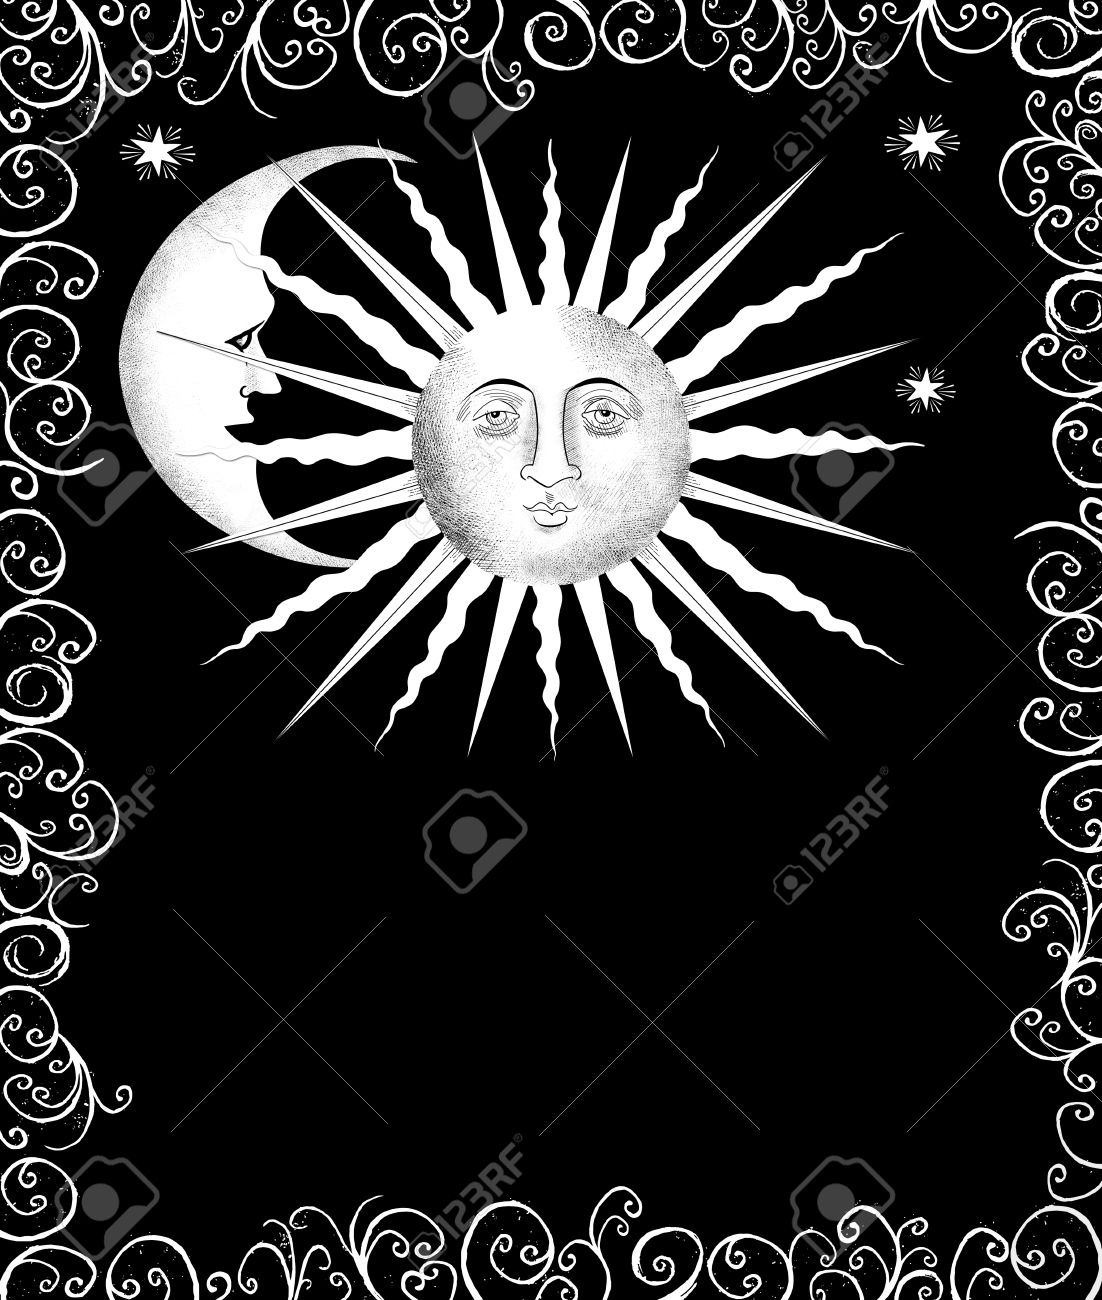 Decorative Drawing Of The Sun And Moon In A Curlicue Frame Stock